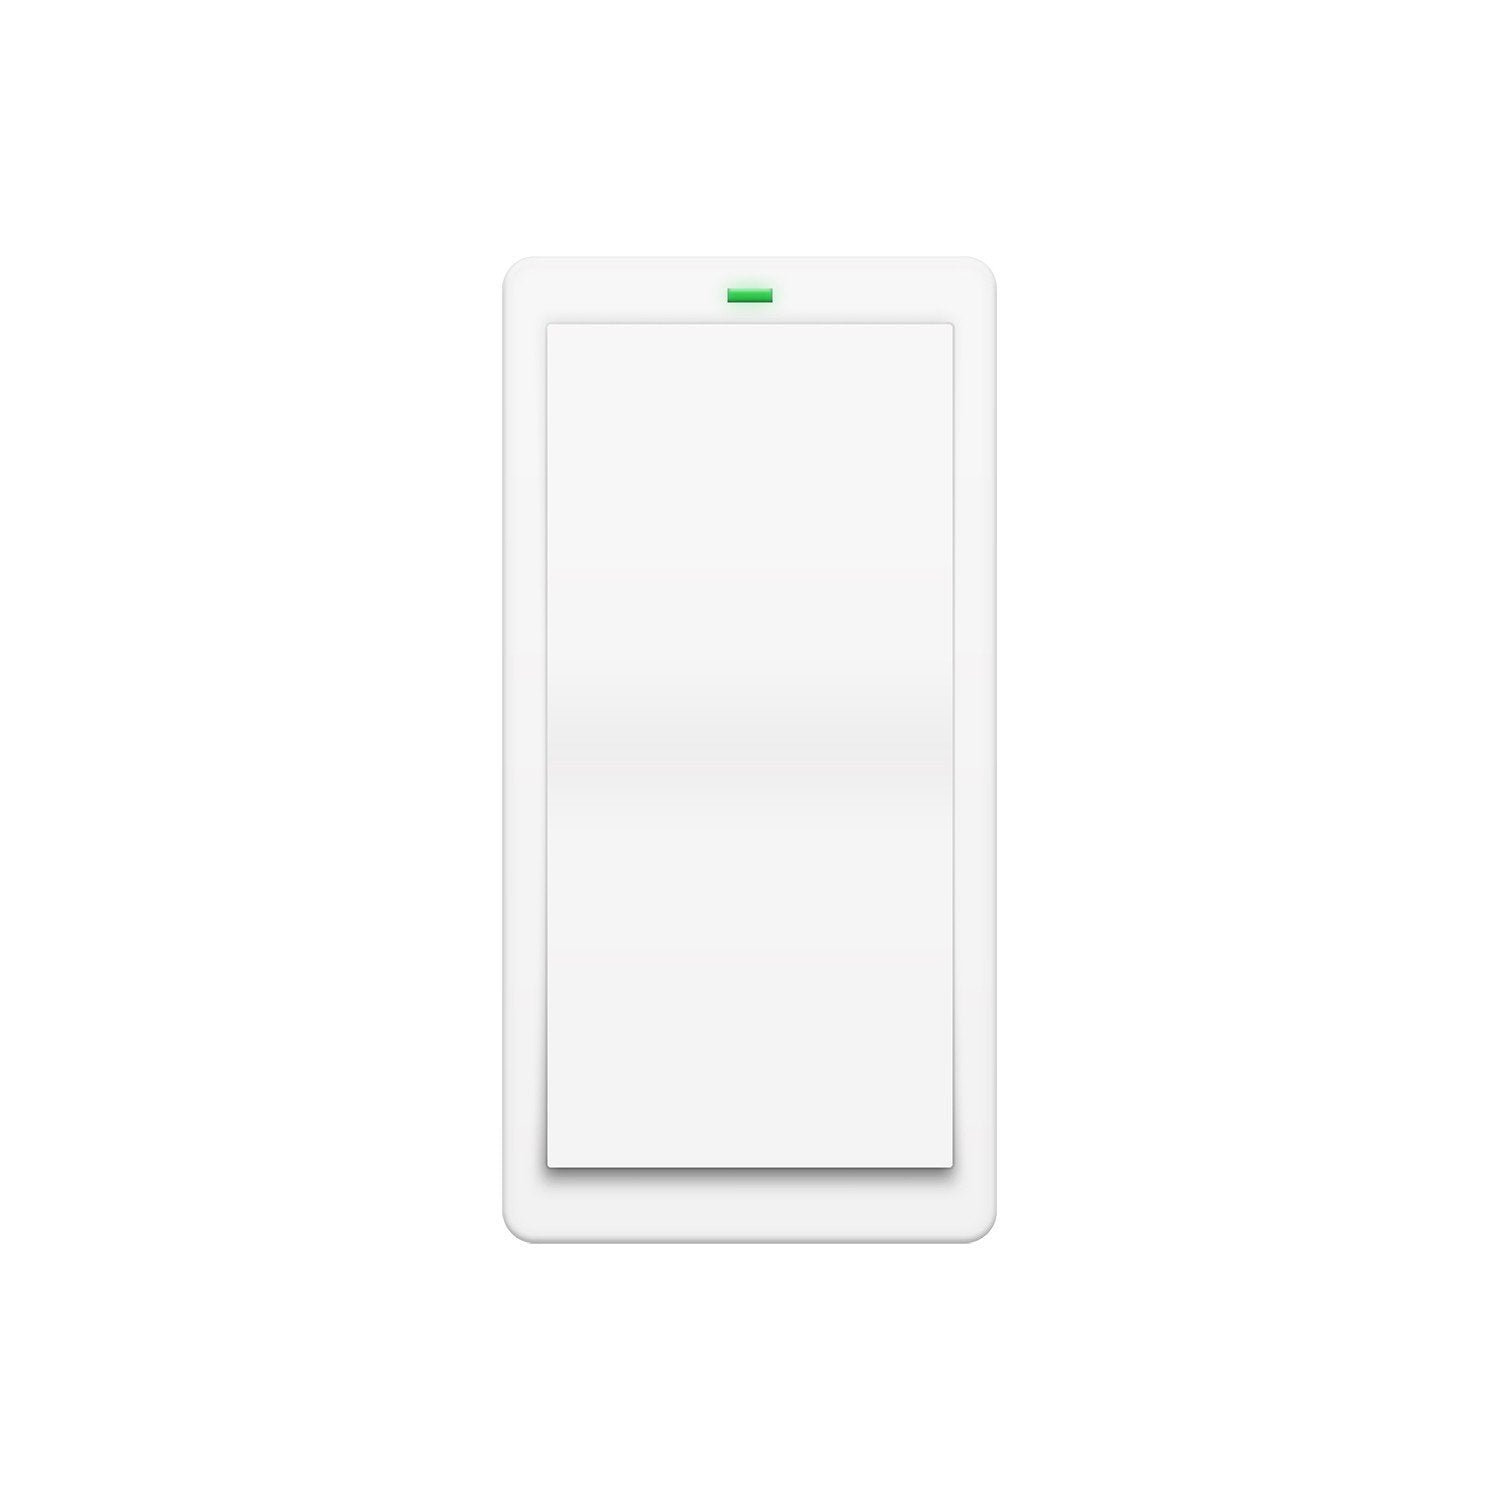 Insteon Mini Remote Control Switch, 1-Scene